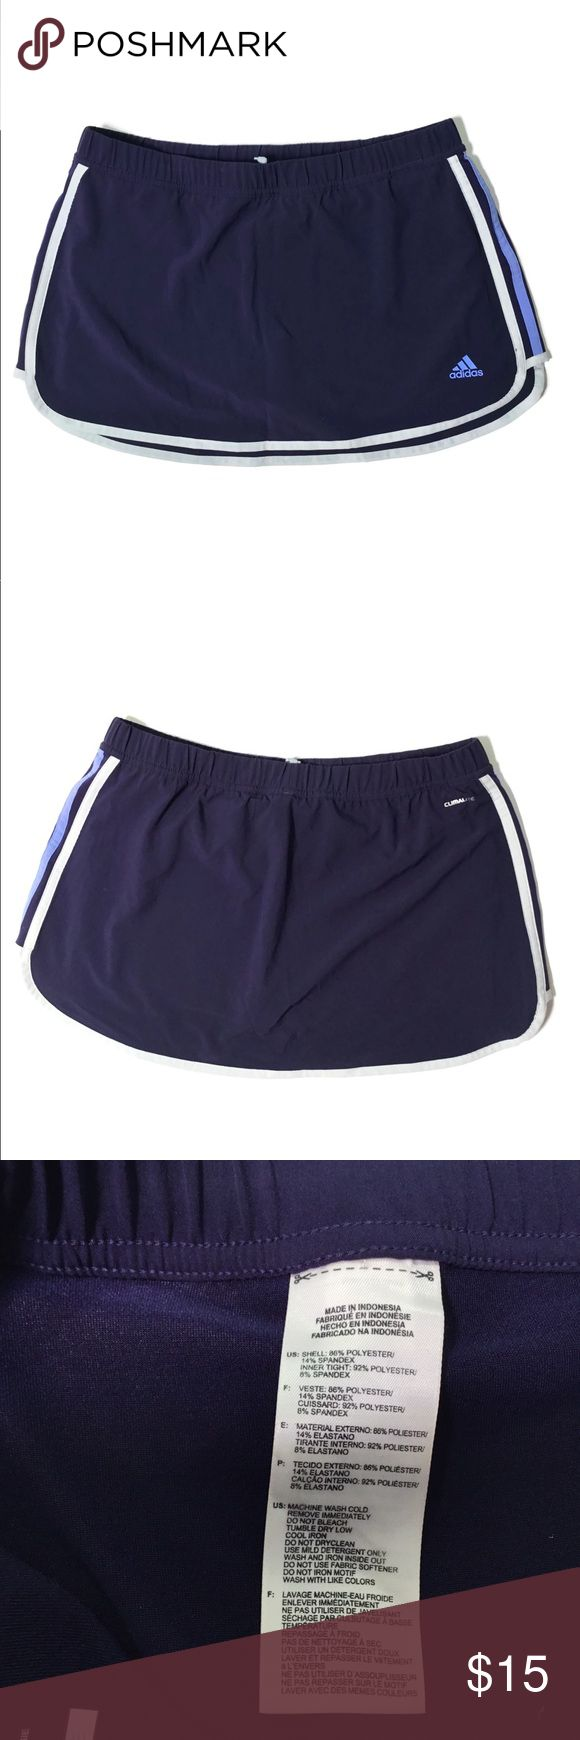 Adidas Tennis Skirt Barely worn and in great condition. Has built-in shorts under skirt. Size medium. Price is firm. adidas Skirts